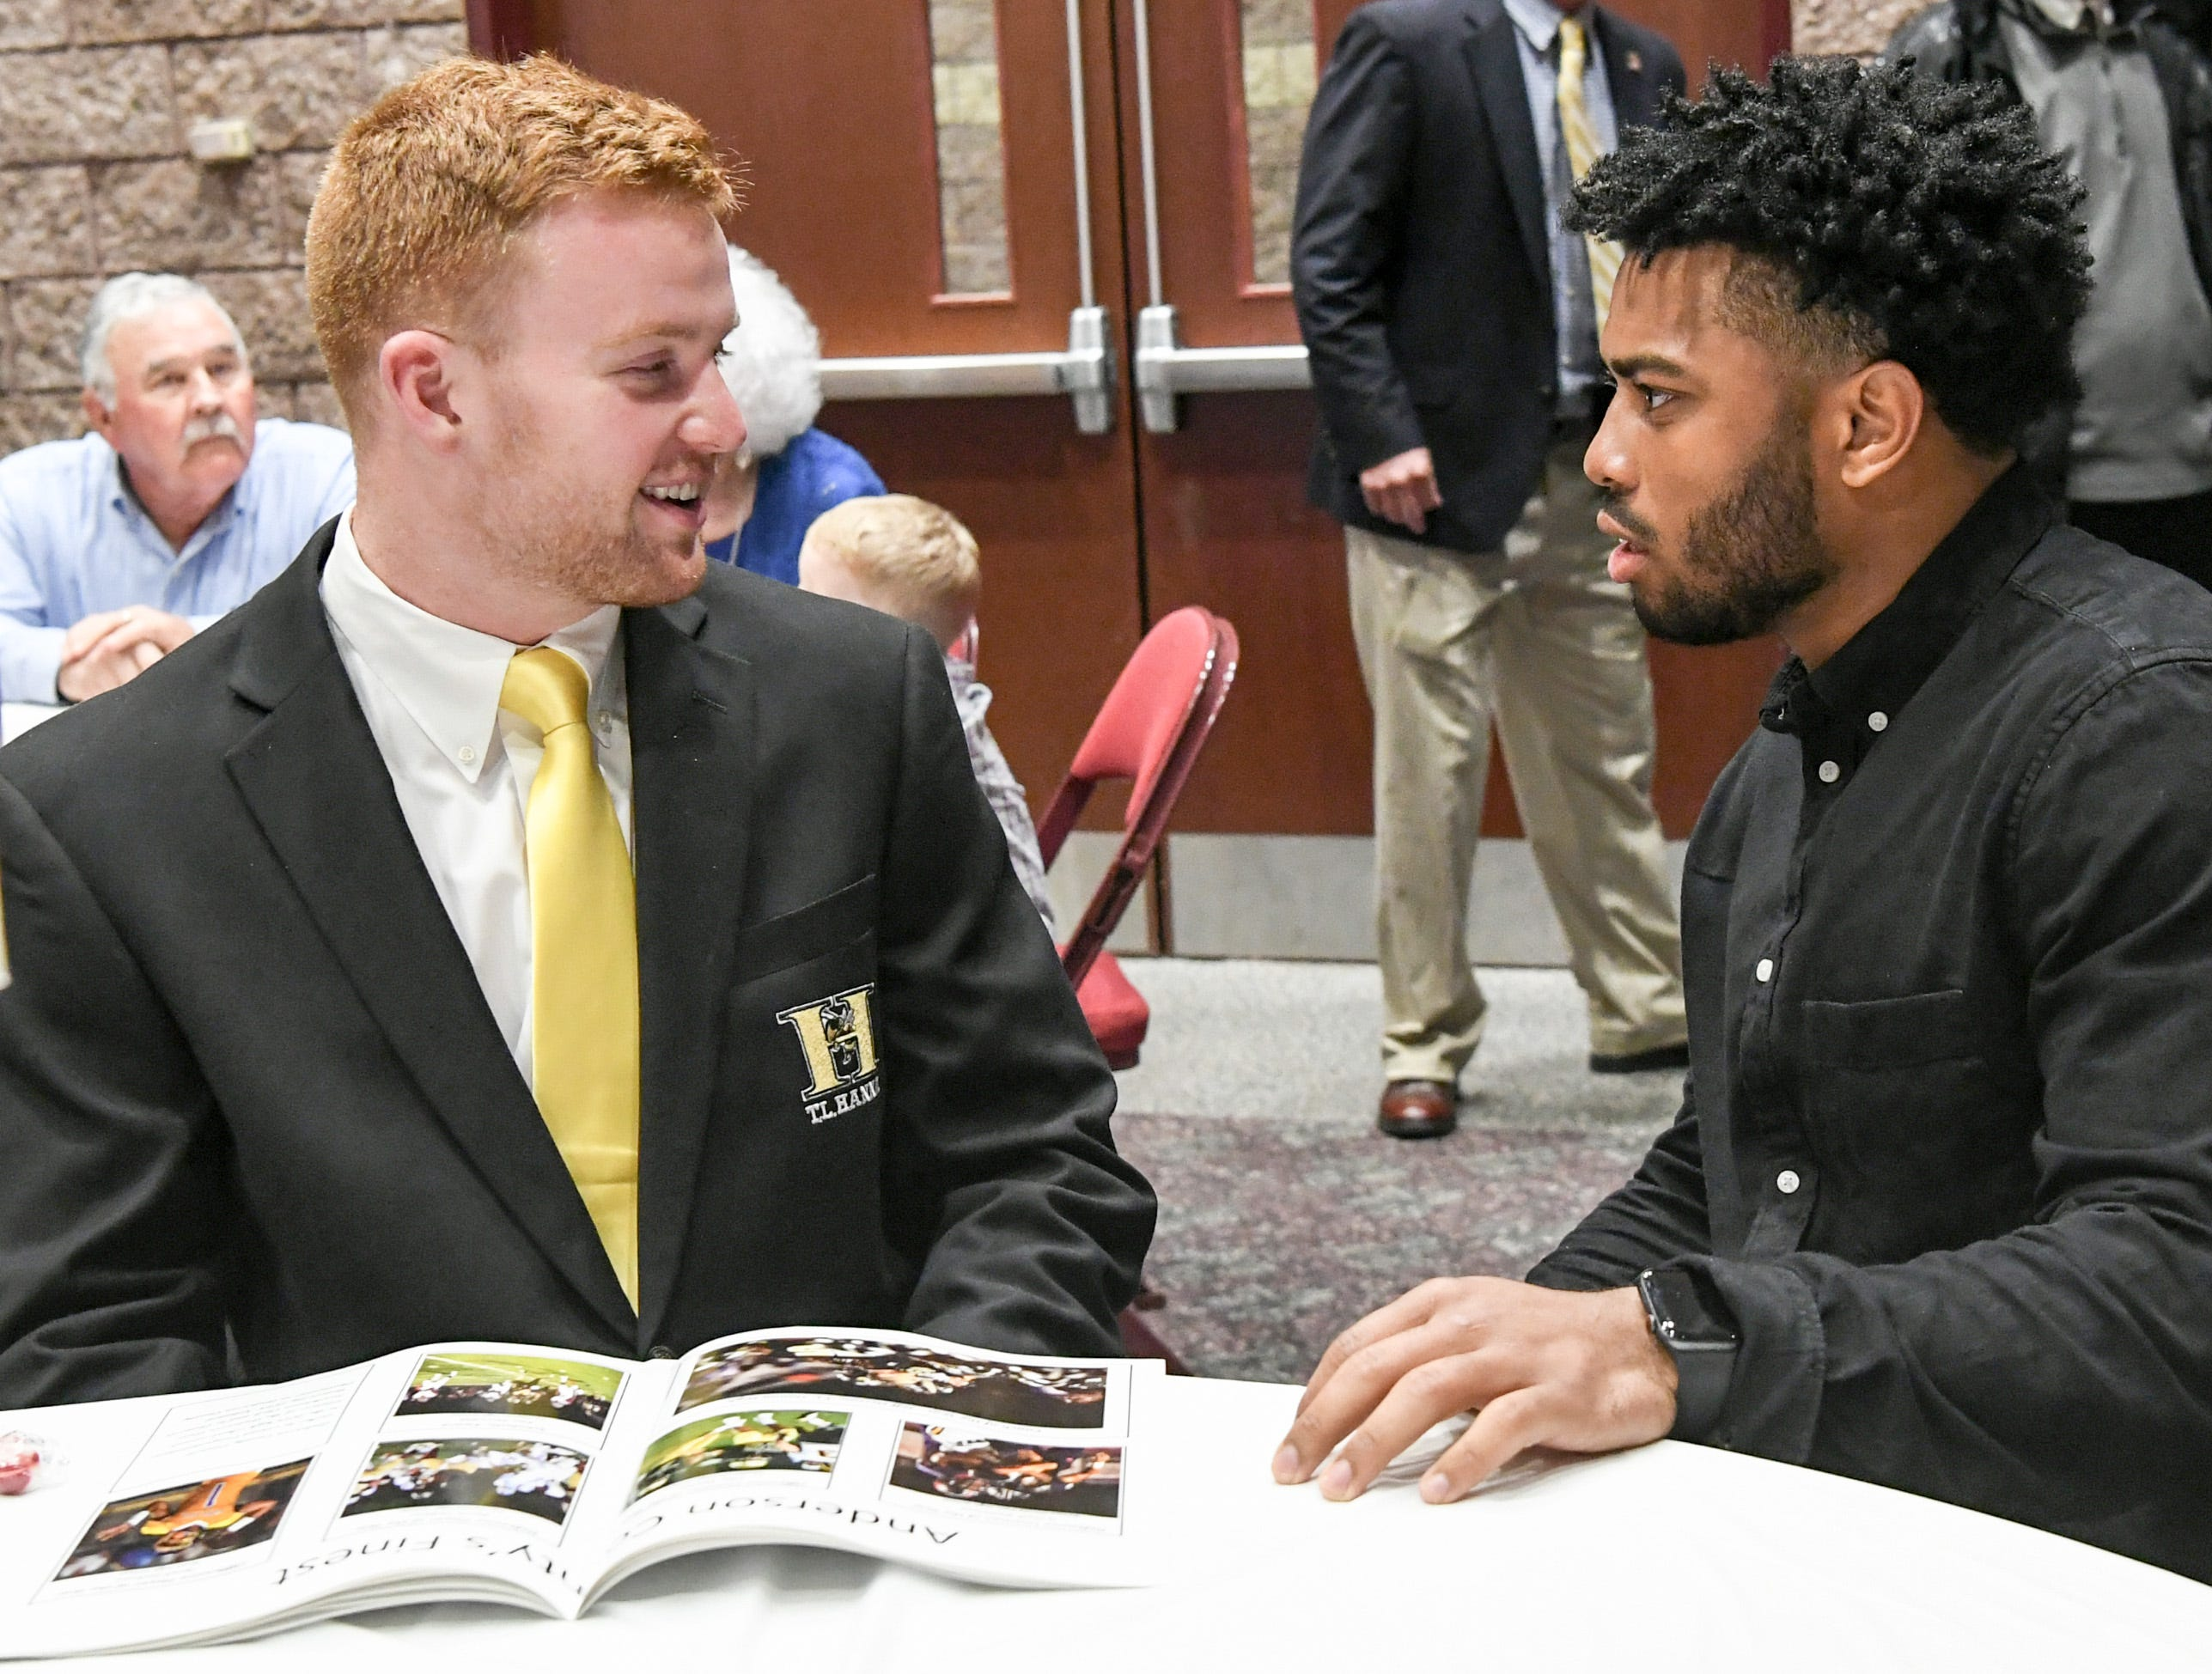 Alex Meredith, left, Scholastic Award winner from T.L.. Hanna High School talks with former Hanna running back and current Clemson running back Darien Rencher, right, before the Anderson Area Touchdown Club Annual Awards Banquet at the Anderson County Civic Center Monday, April 8th, 2019. Awards were given to the Players of the Year and the Coach of the Year from the eight Anderson County high schools. The club honored former Belton-Honea Path player Kendall Joseph who was part of two National Championship Clemson football teams.